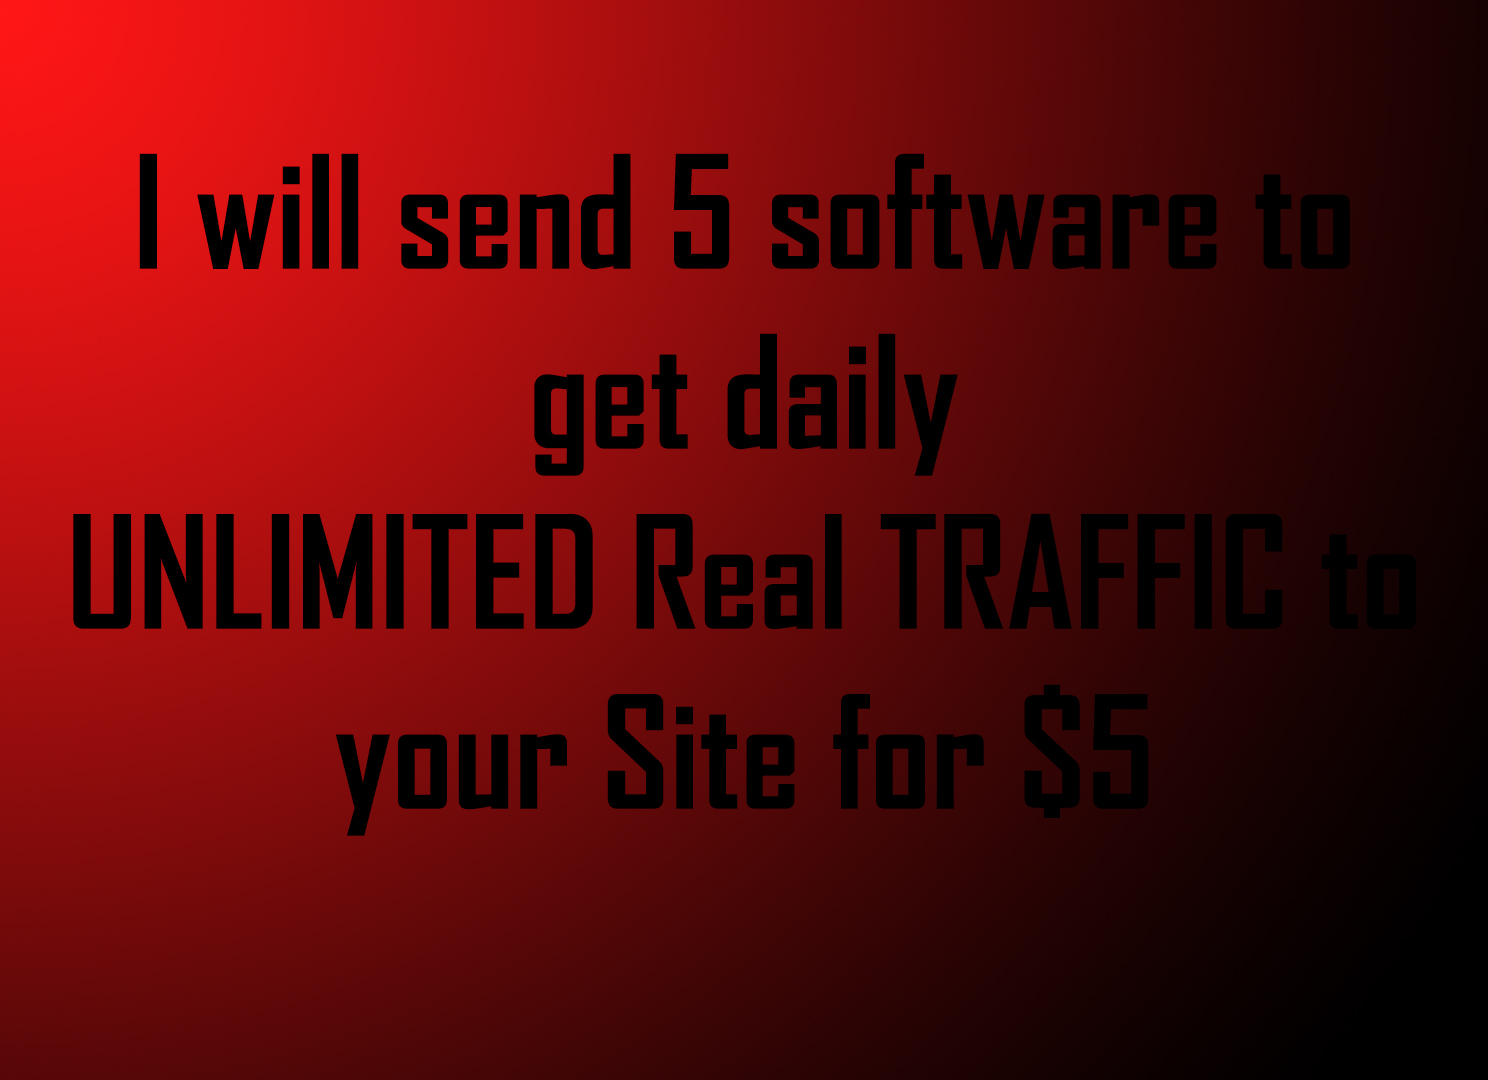 I will send 5 software to get daily UNLIMITED Real TRAFFIC to your Site